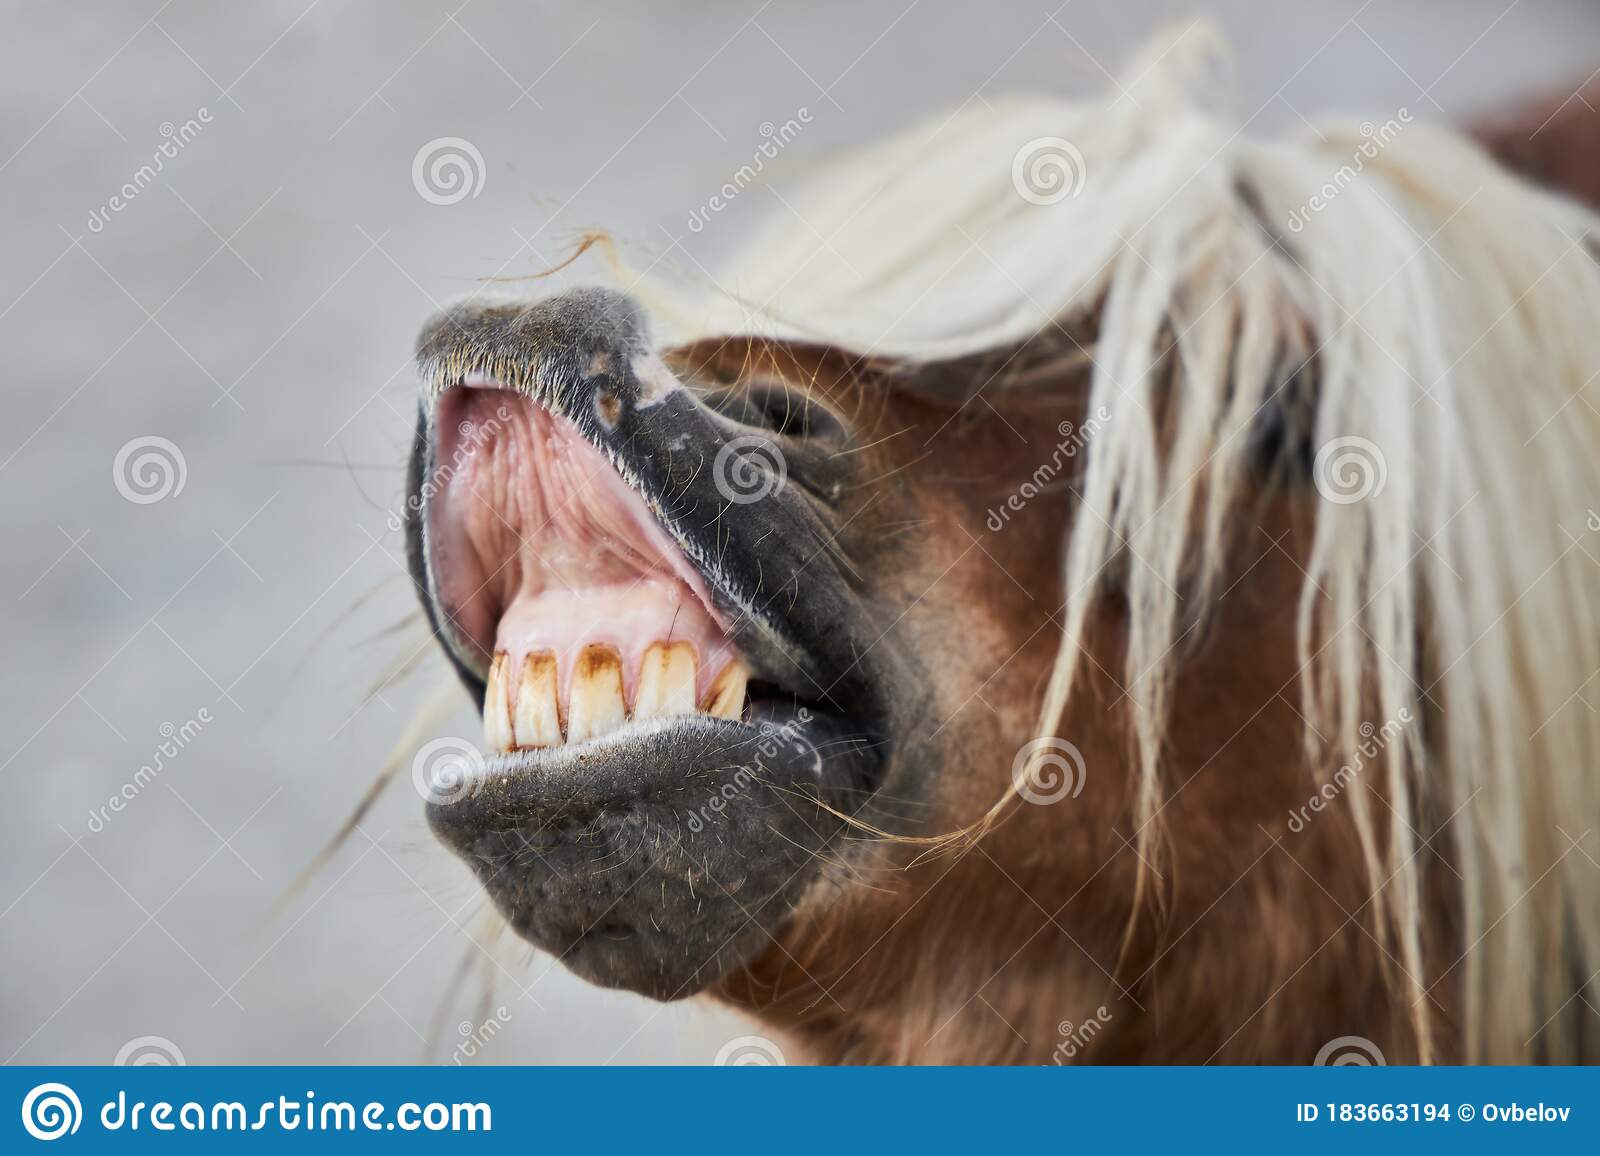 Funny Brown Horse With A White Mane Opened Its Mouth And Shows Teeth Stock Photo Image Of Open Laugh 183663194